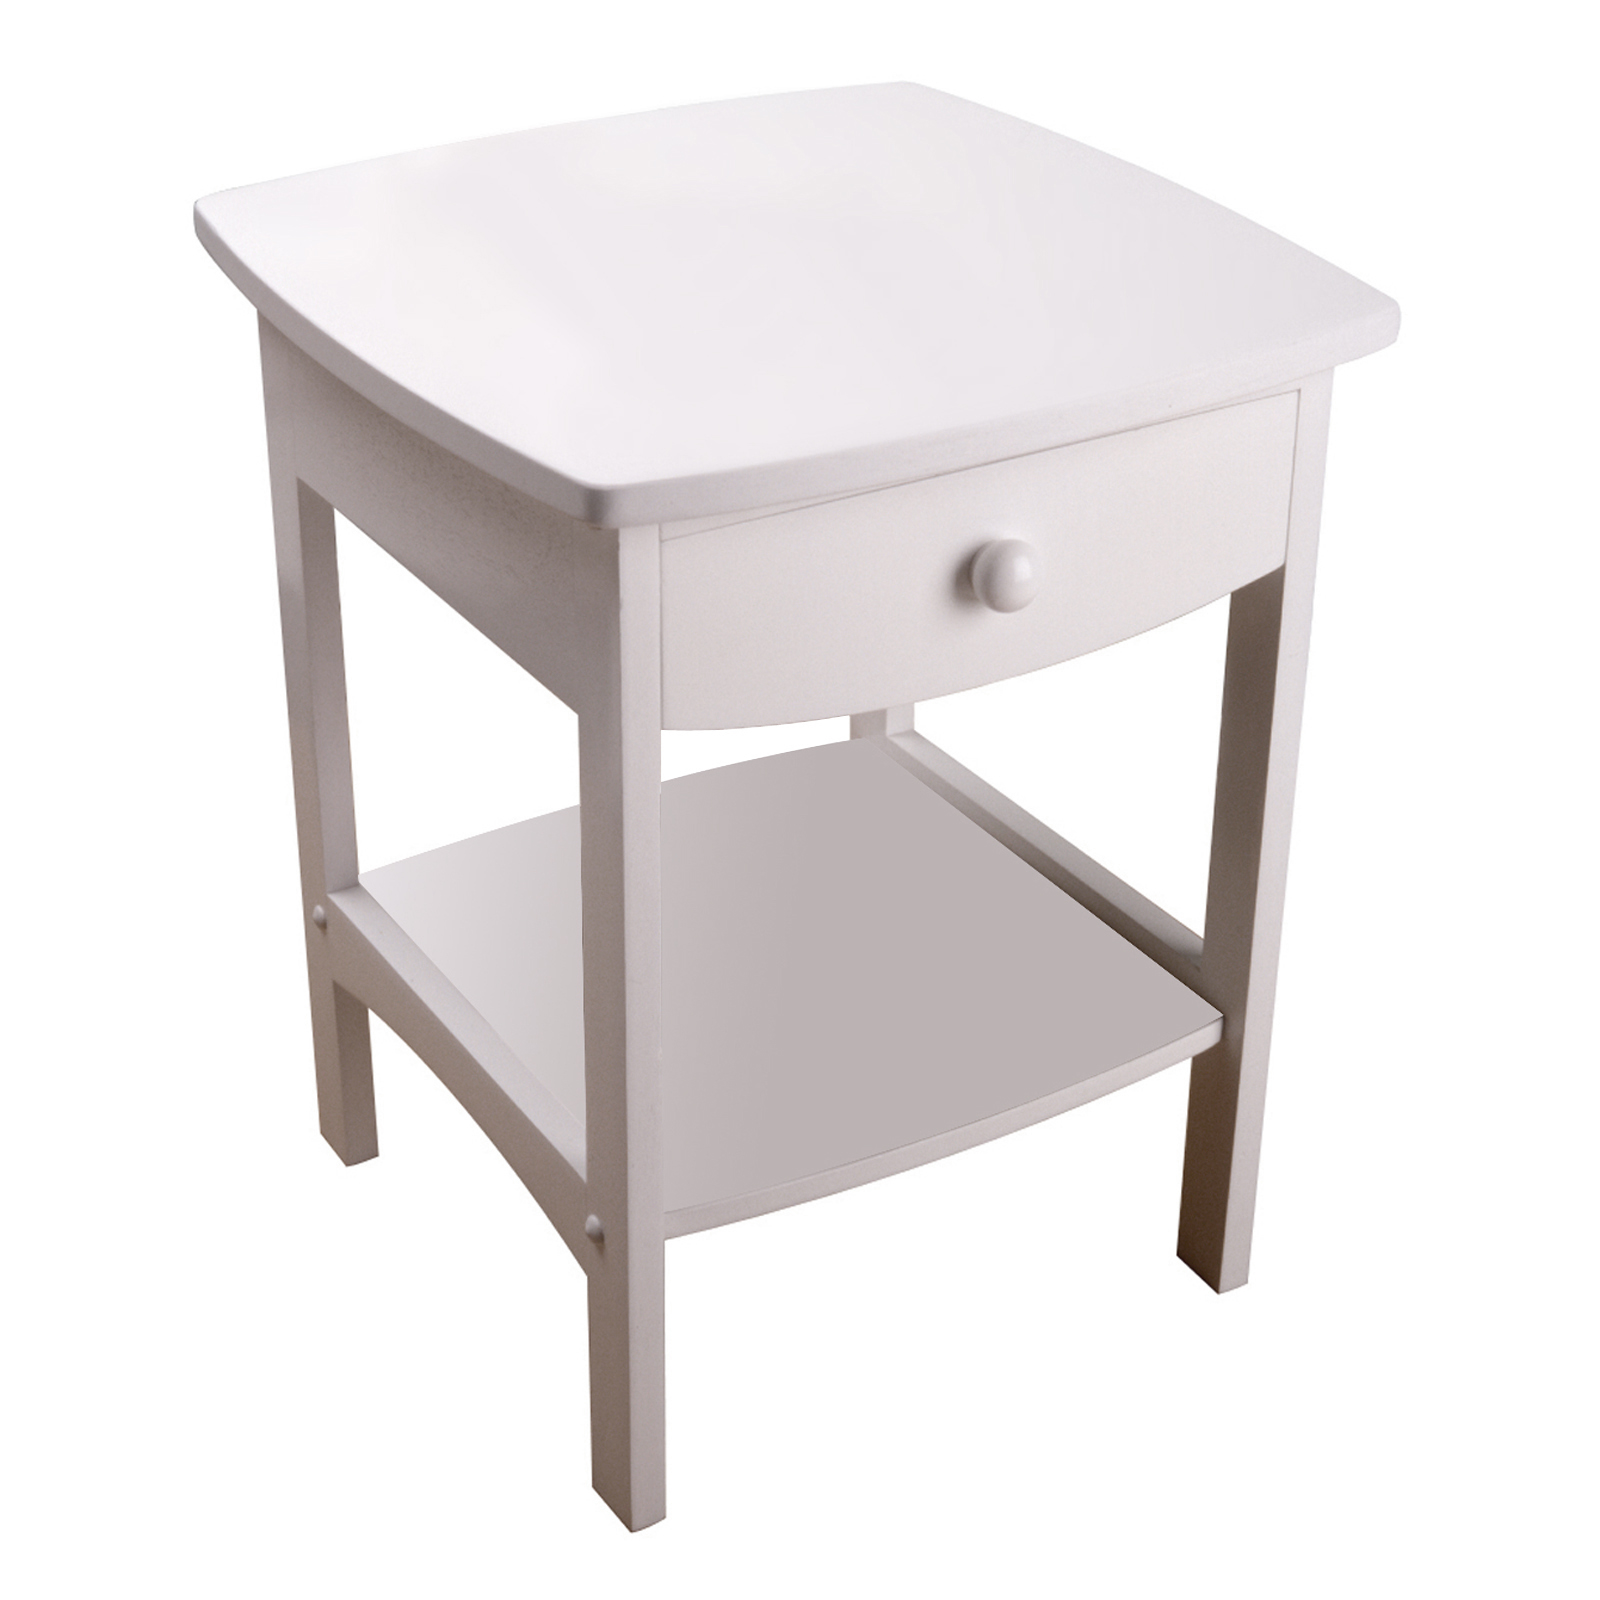 Merveilleux Winsome Wood Curved Nightstand / End Table   Walmart.com